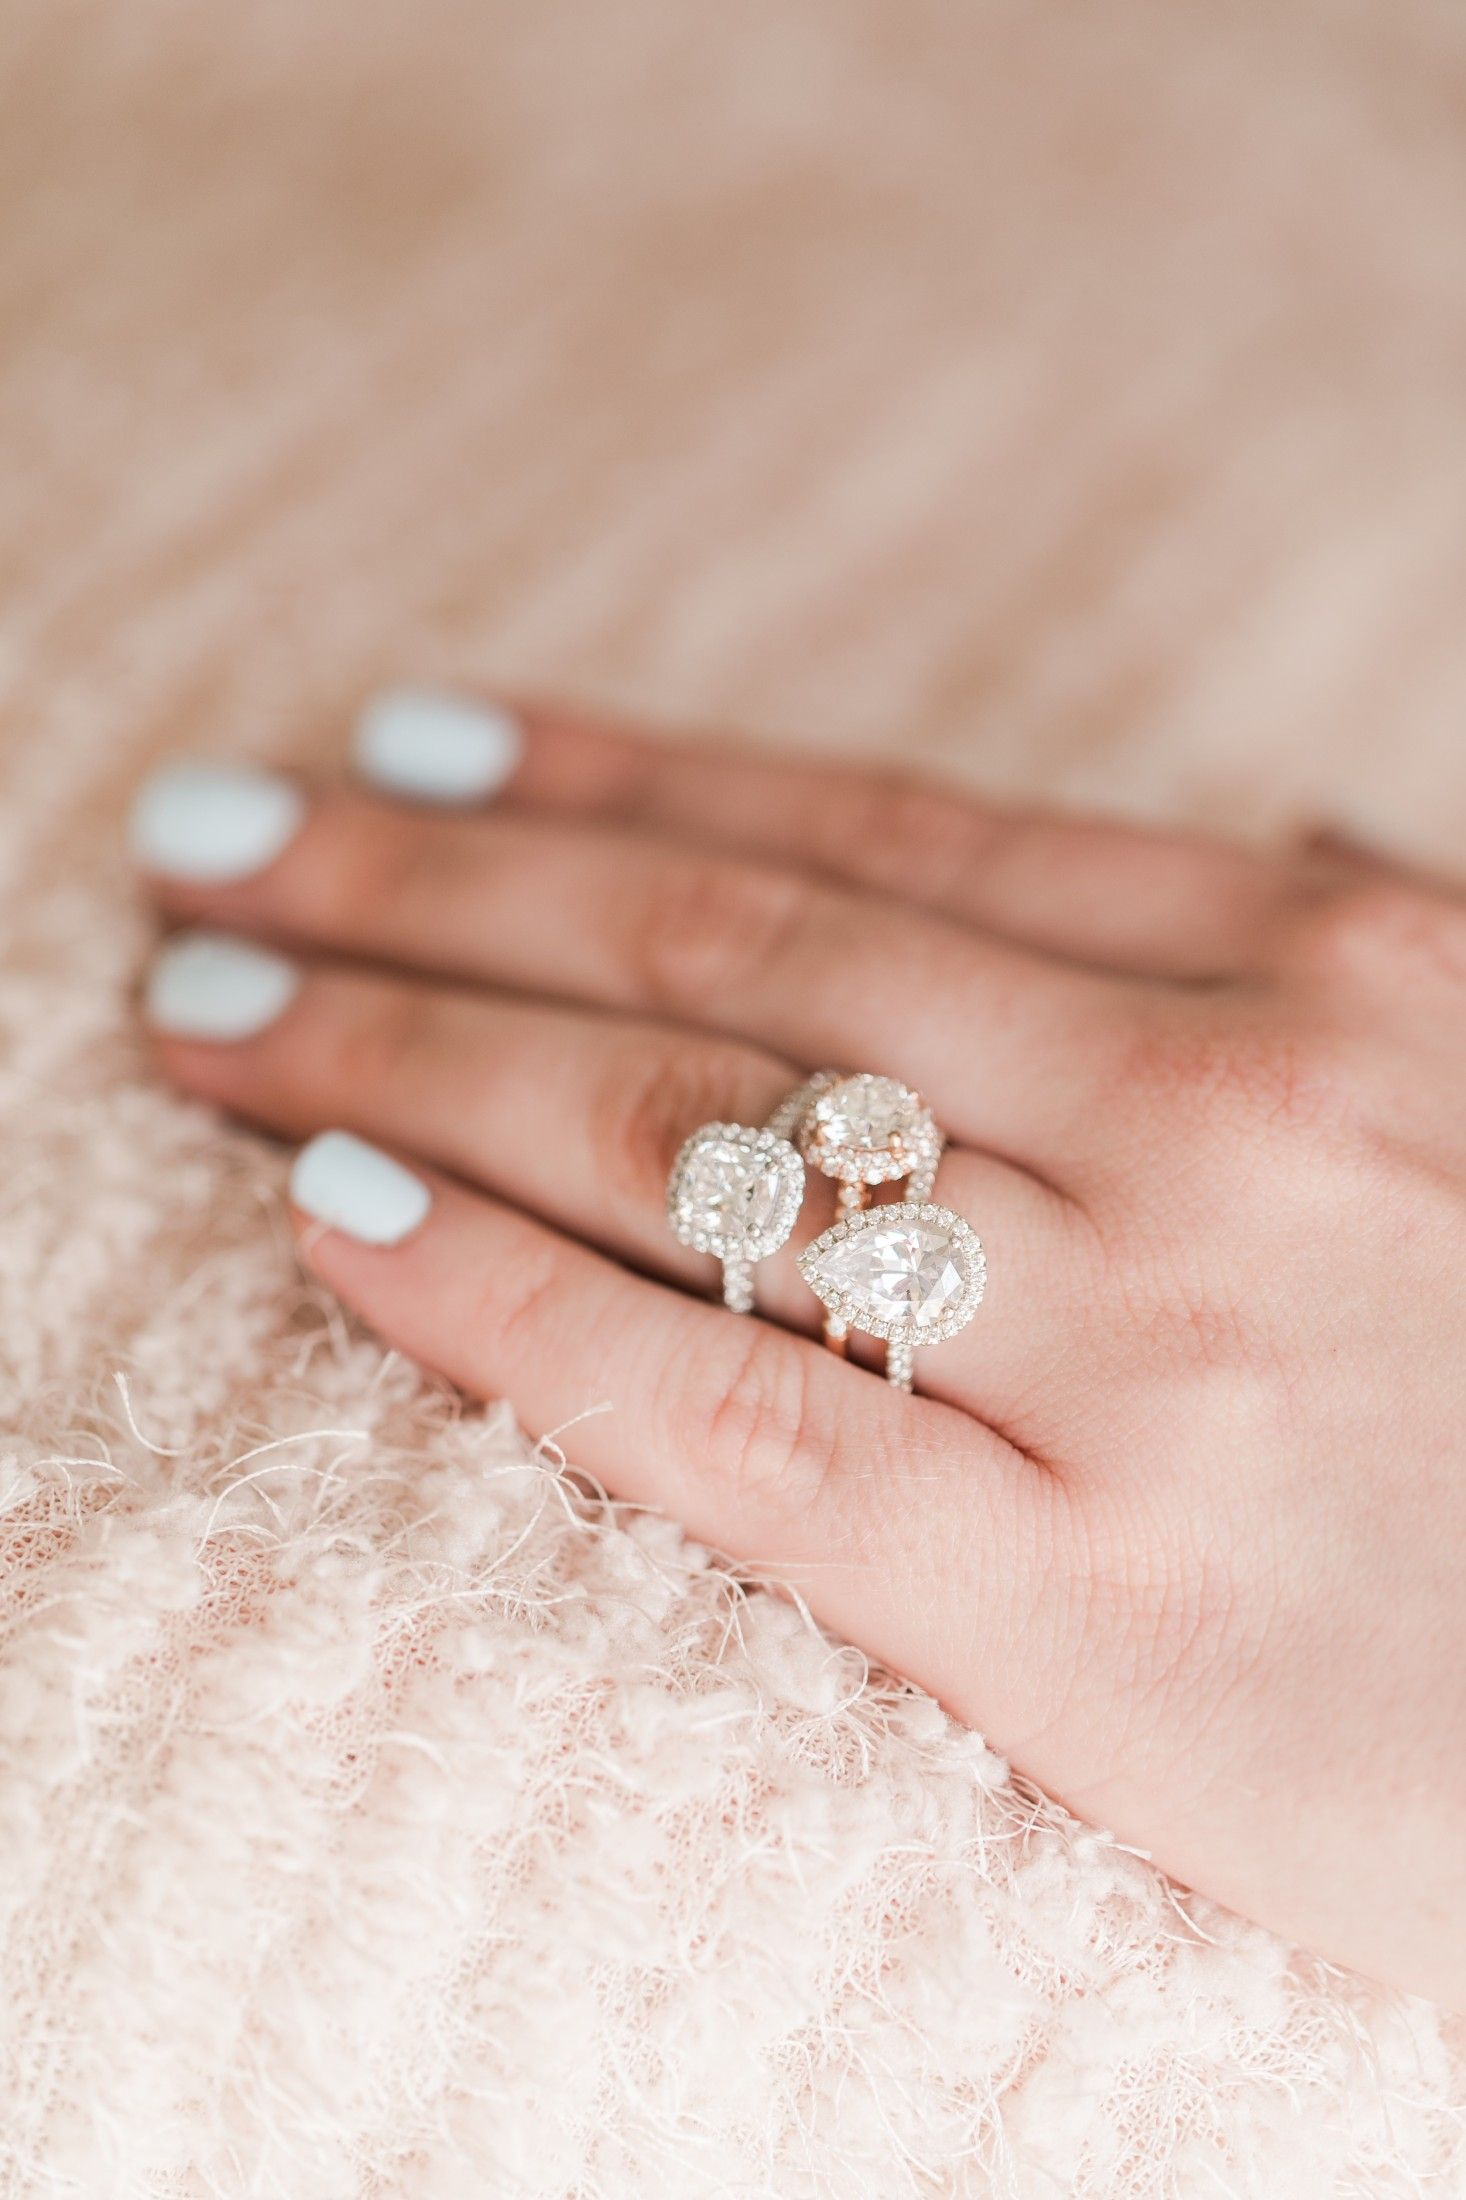 [ad] Which Ring Shape Is Your Favorite? Build Your Own Engagement Ring At